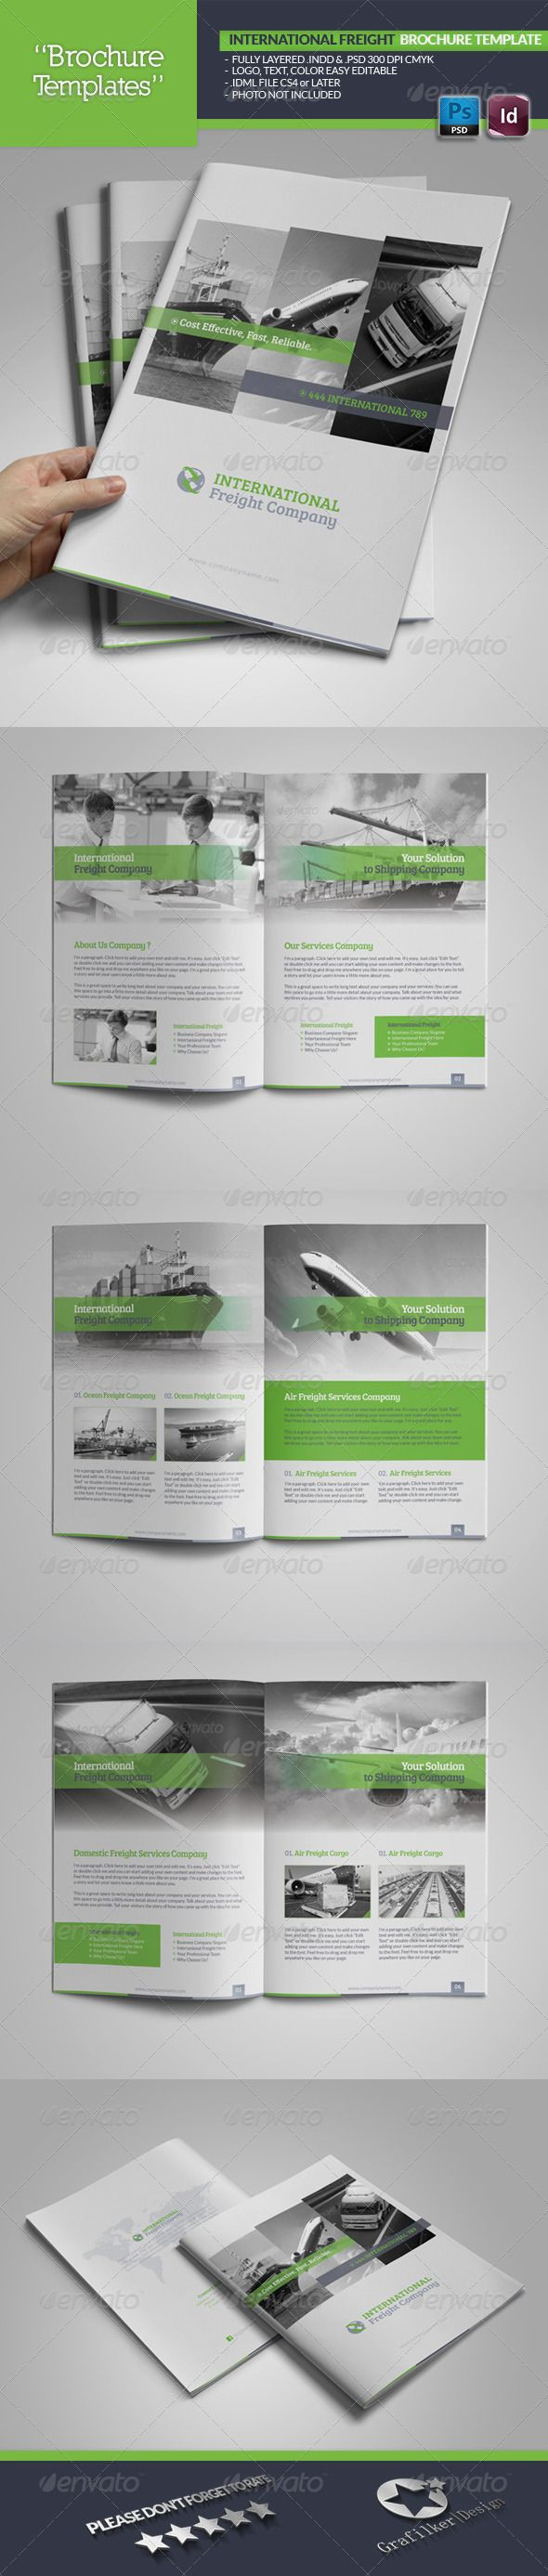 International Freight Brochure Template